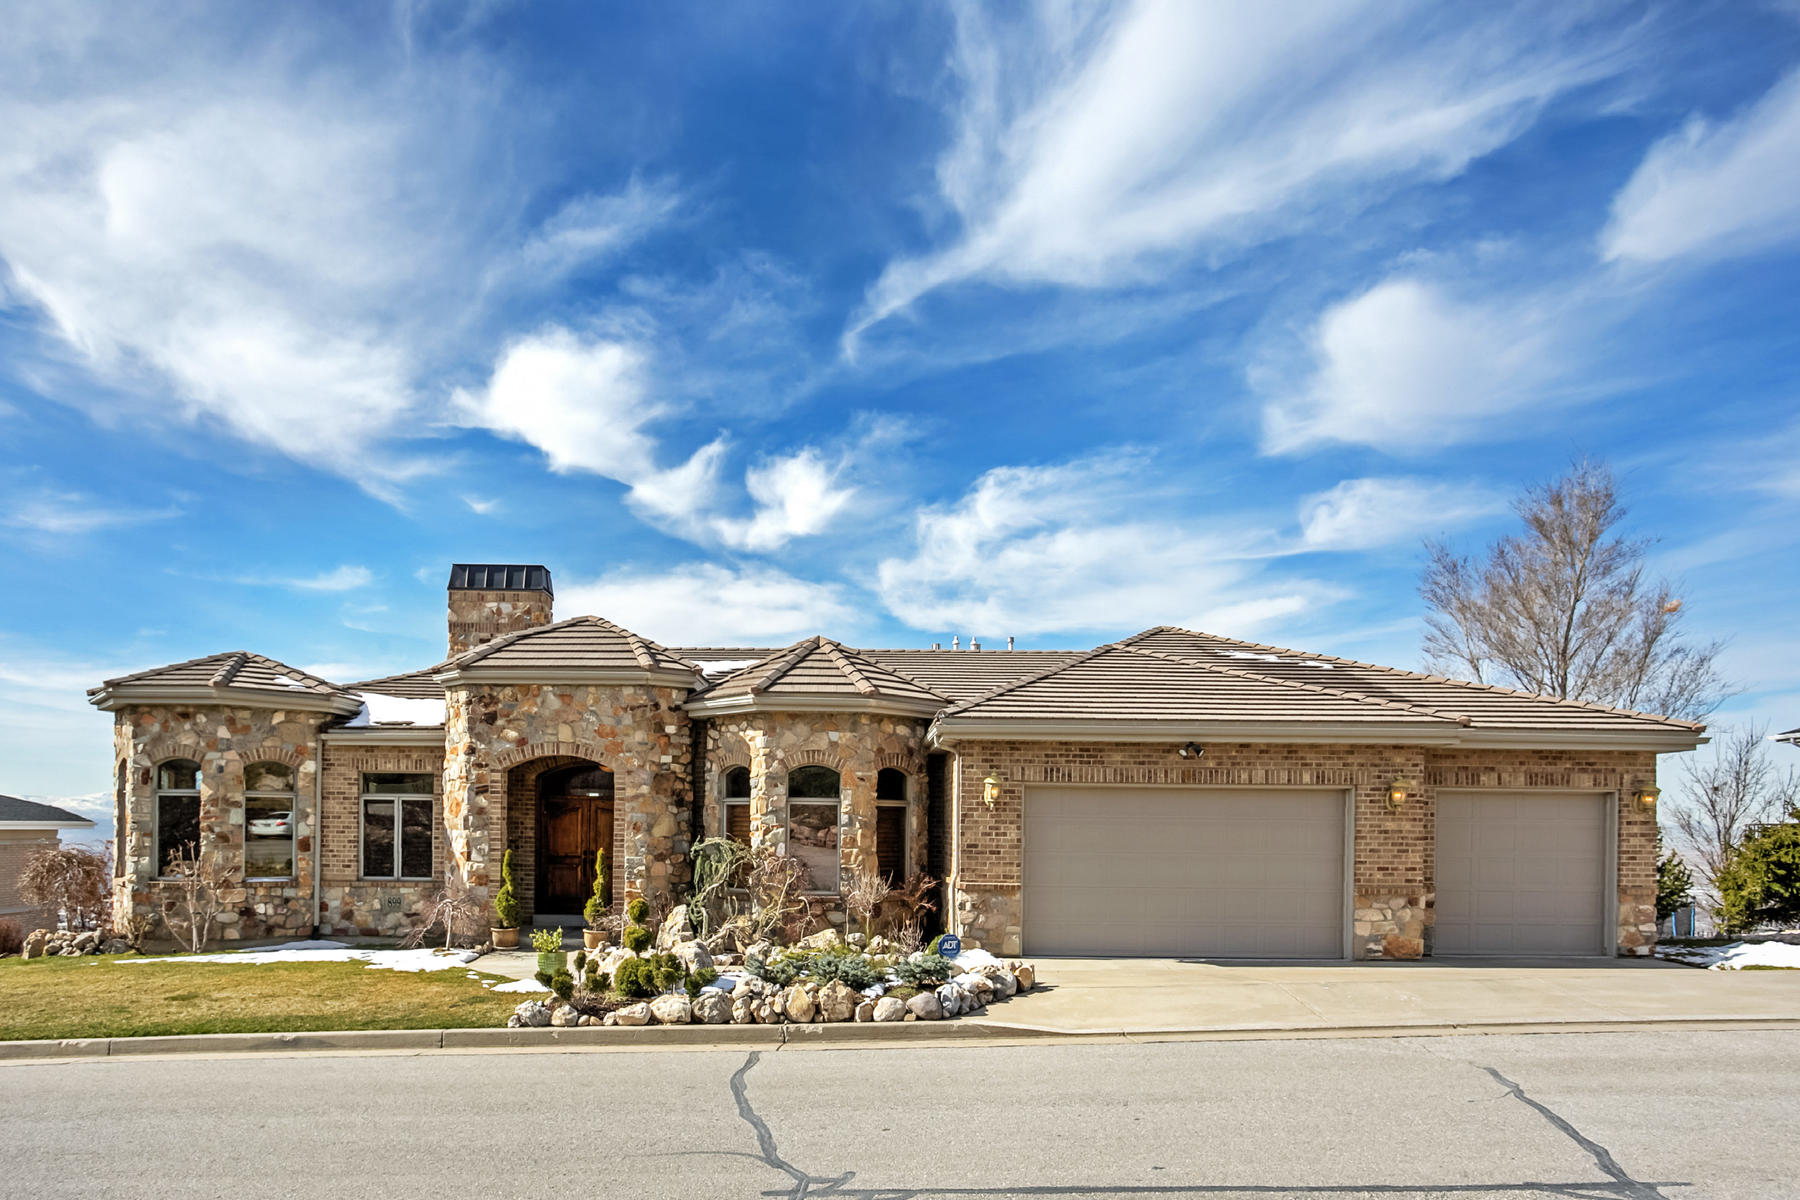 Single Family Home for Sale at Custom Designed Home with Sweeping Views 899 N Sandhurst Dr Salt Lake City, Utah, 84103 United States